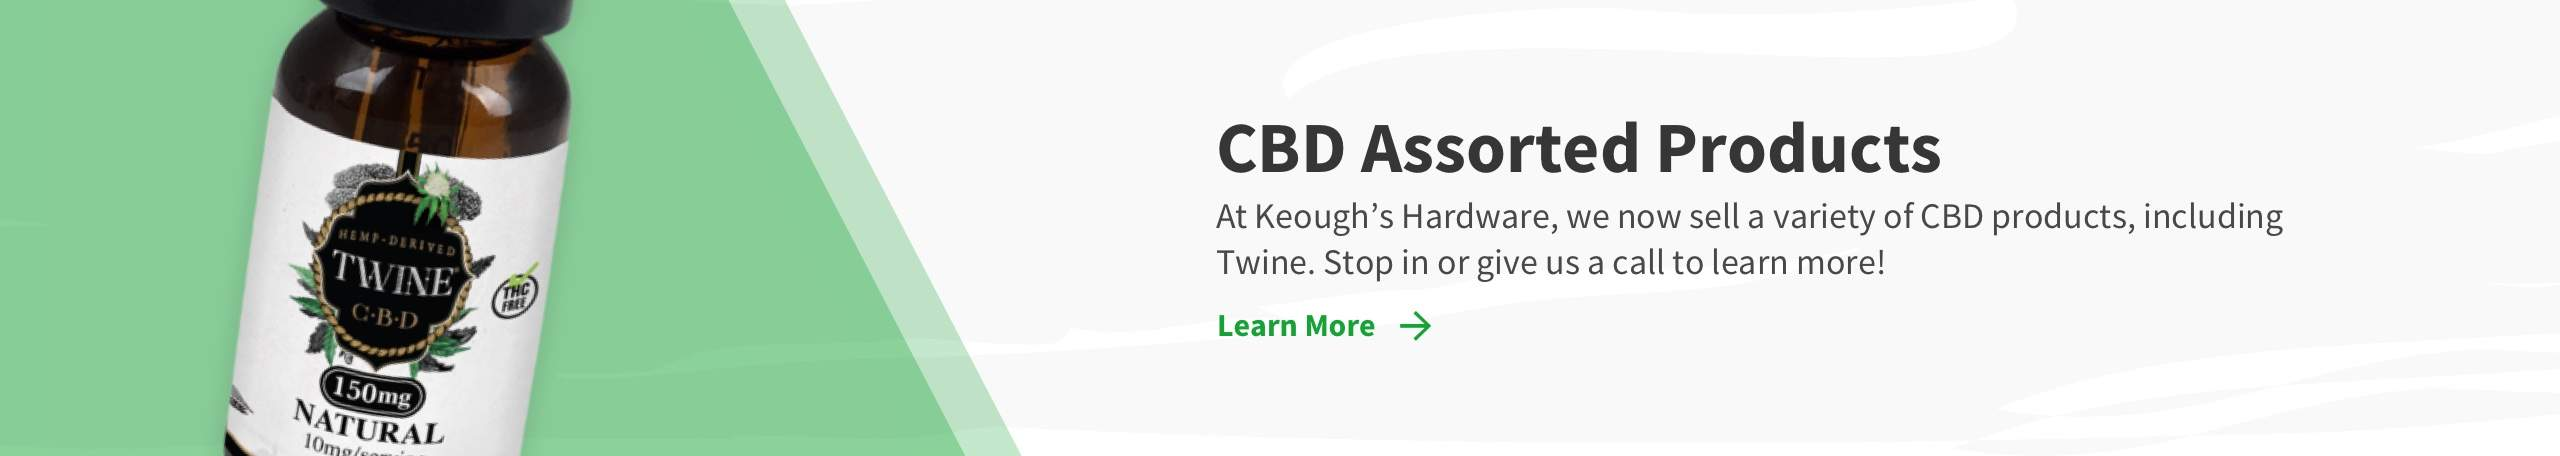 CBD Assorted Products. At Keough's Hardware, we now sell a variety of CBD products, including Twine. Stop in or give us a call to learn more!. Learn More link and CBD bottle